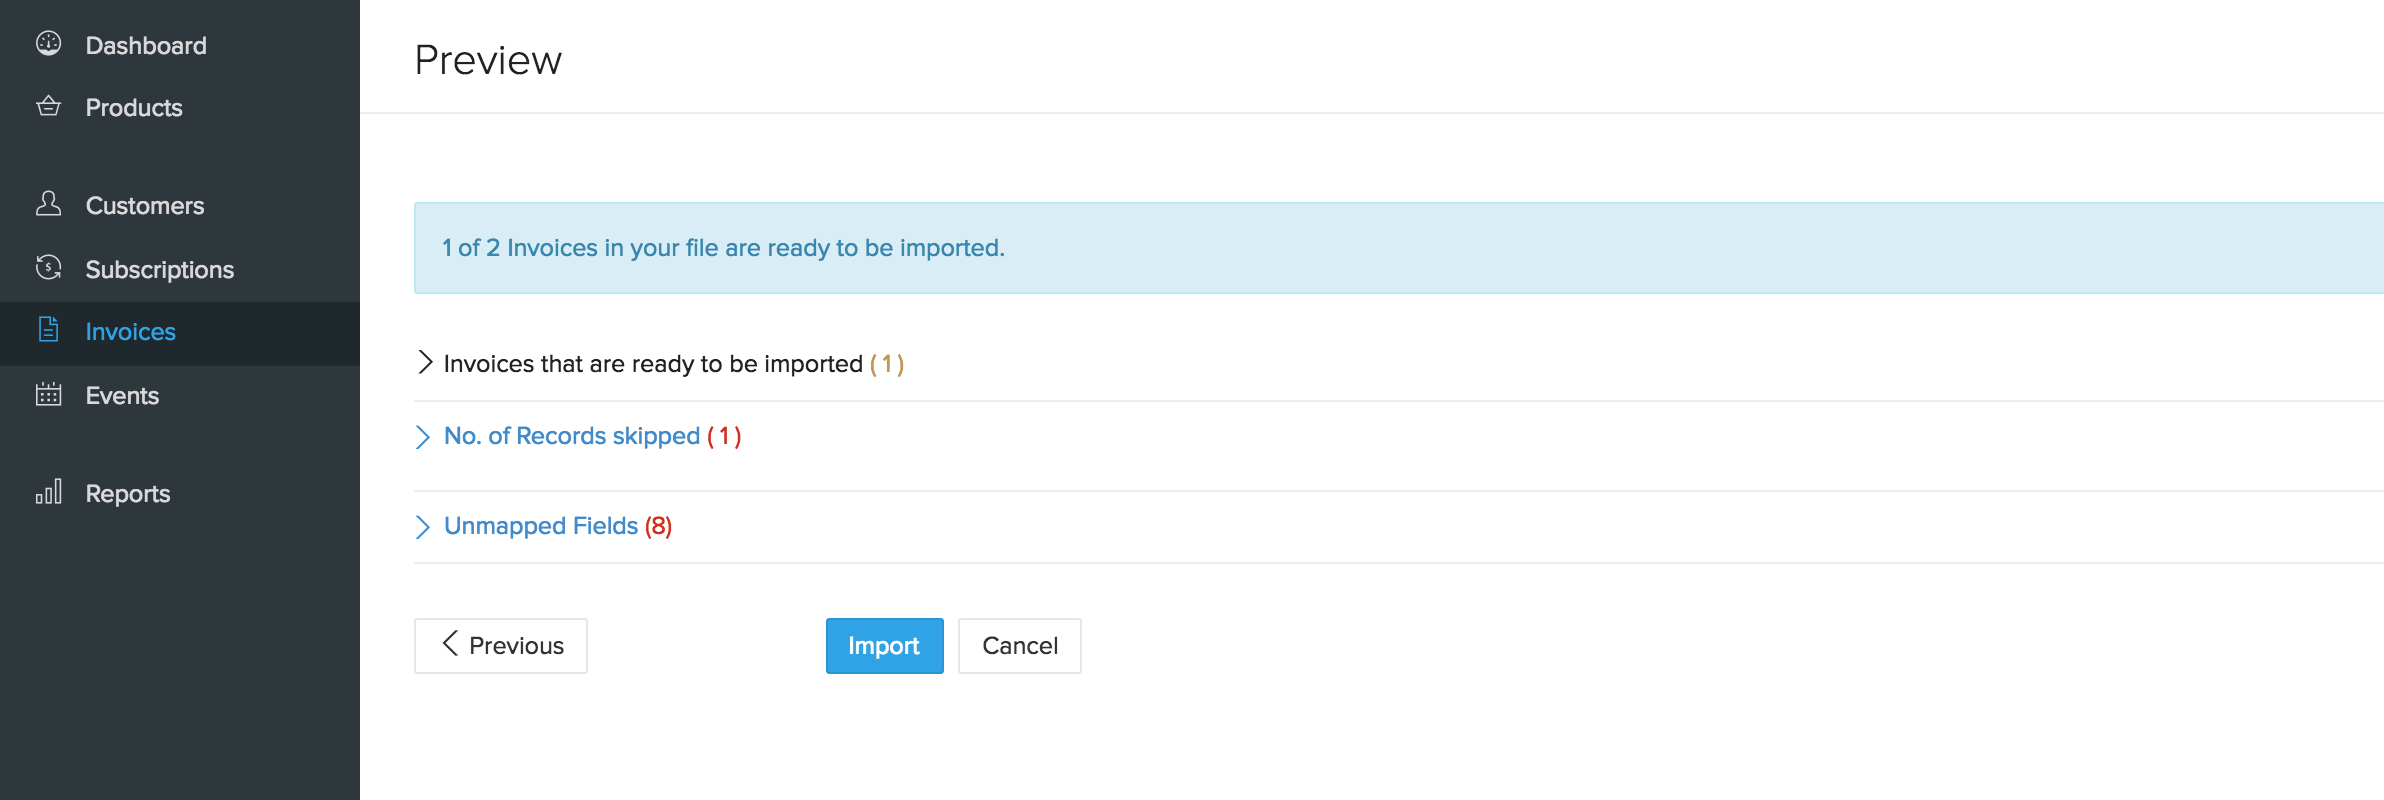 Import Invoices - Preview screen